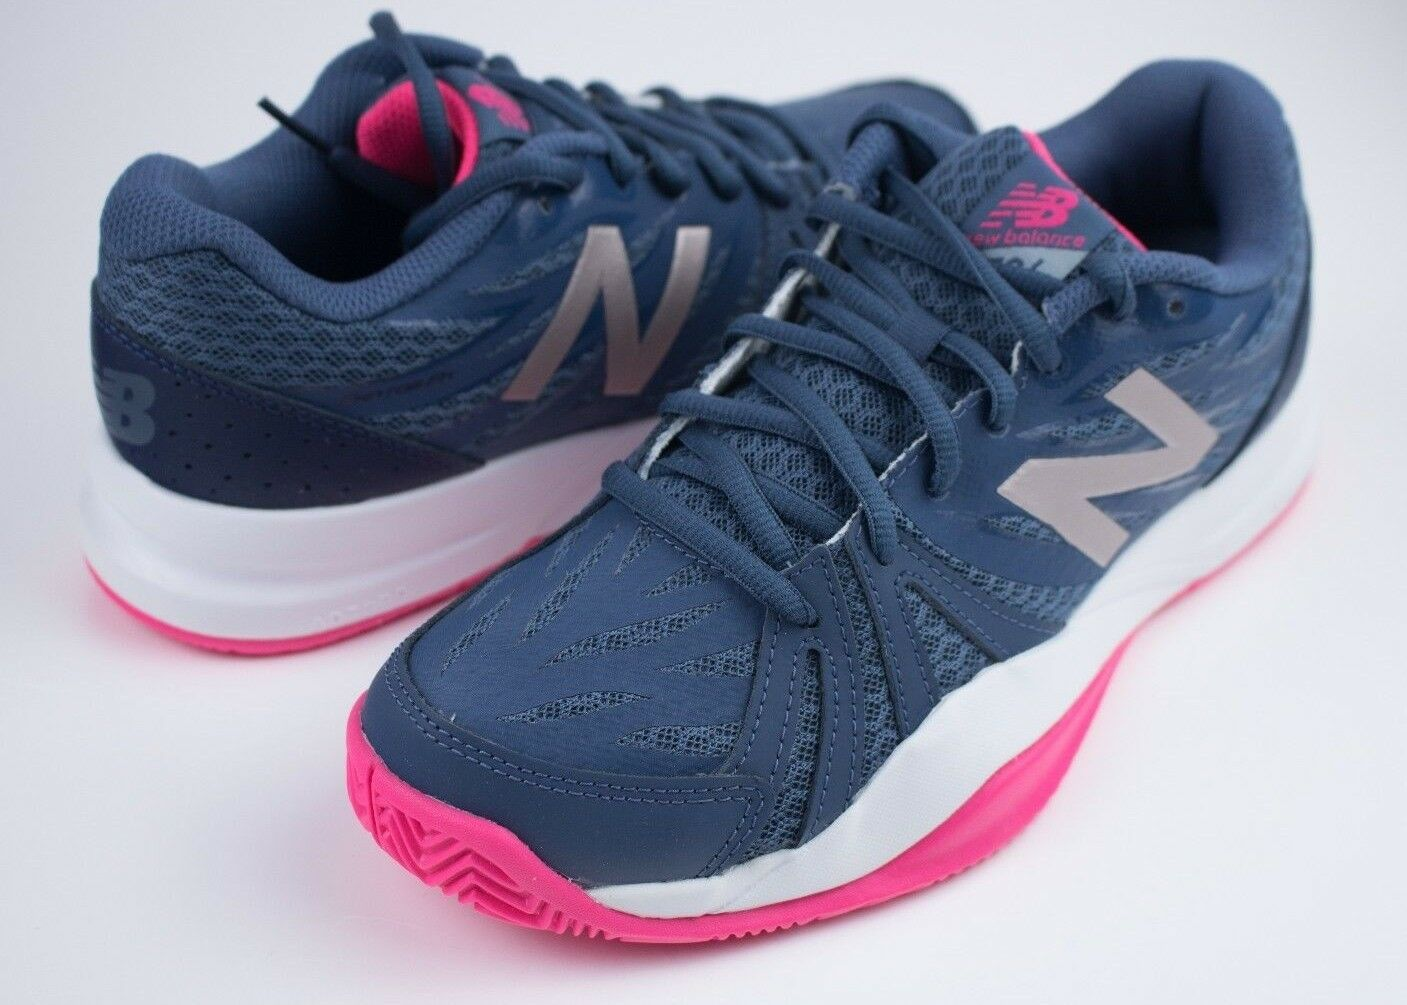 NEW BALANCE BALANCE BALANCE Womens WC786VI2 TENNIS Sneakers